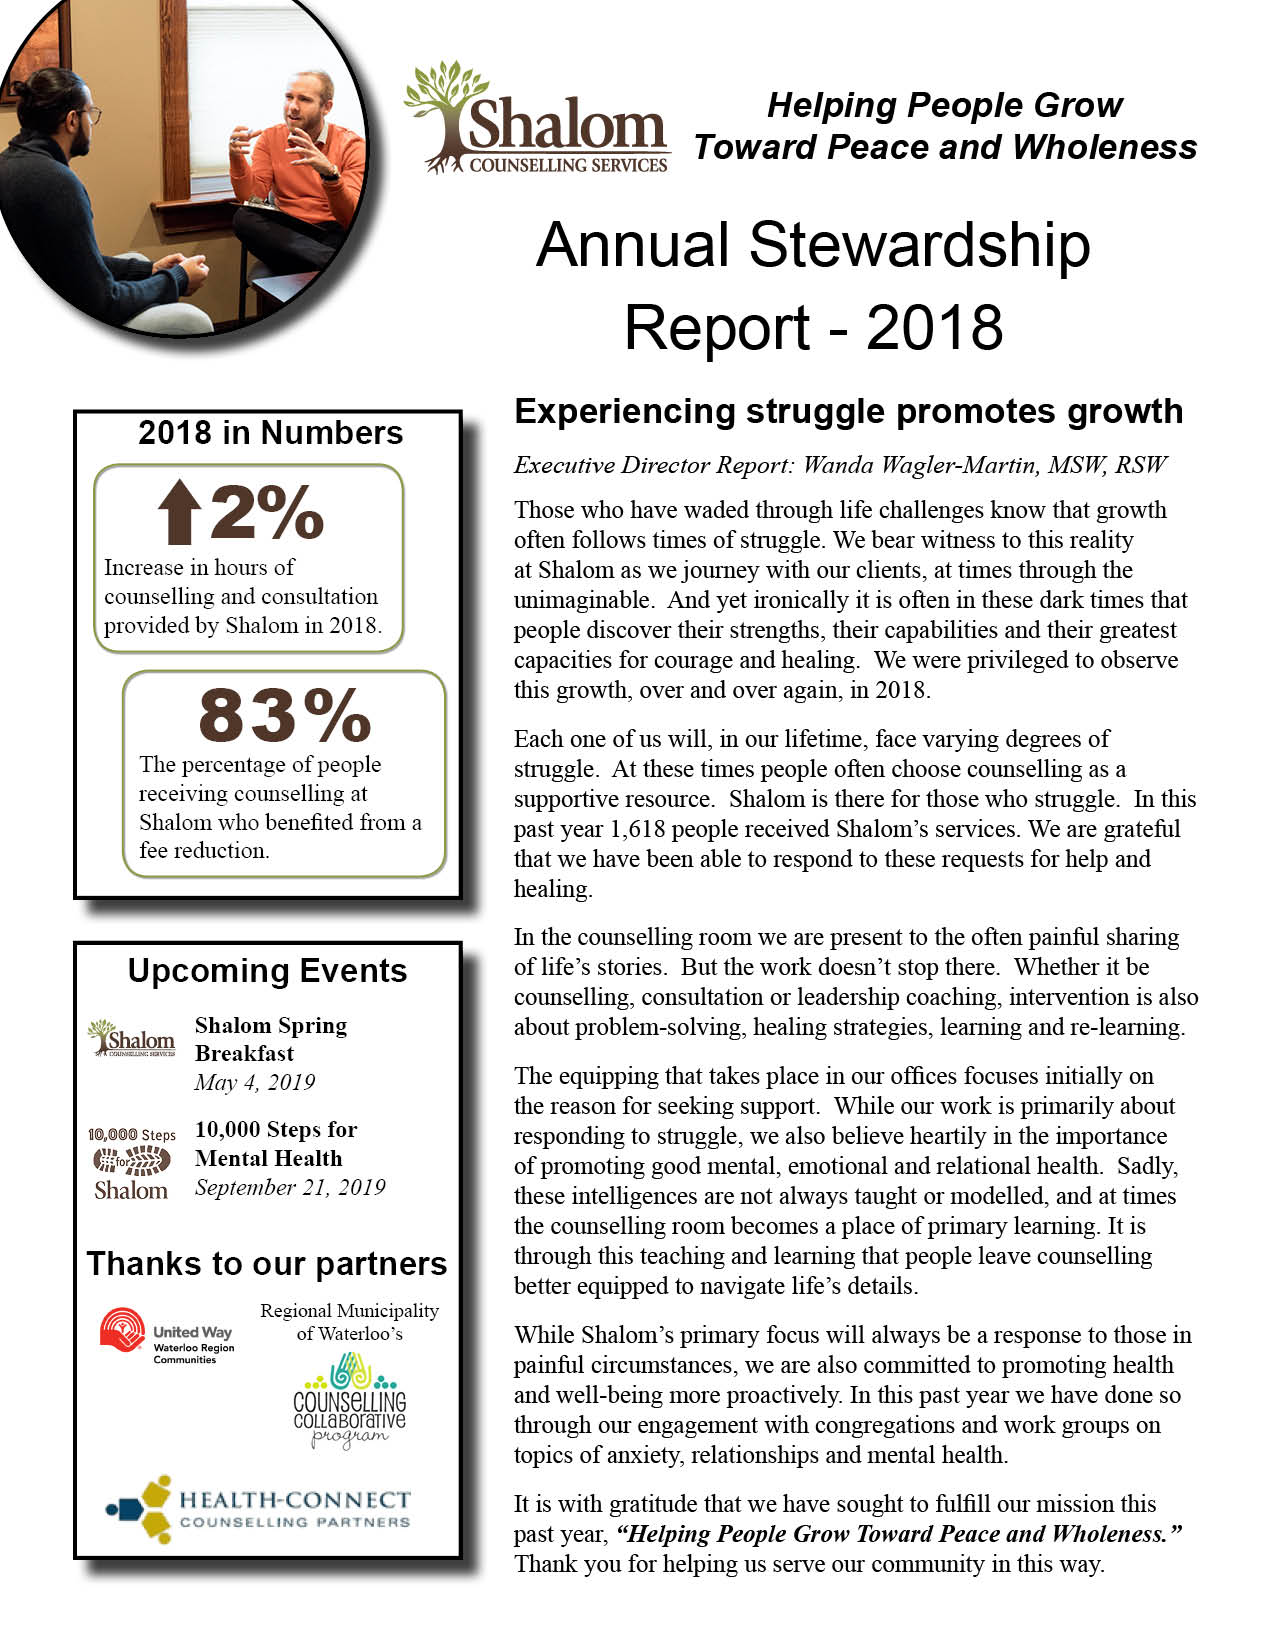 Annual Stewardship Report - 2018